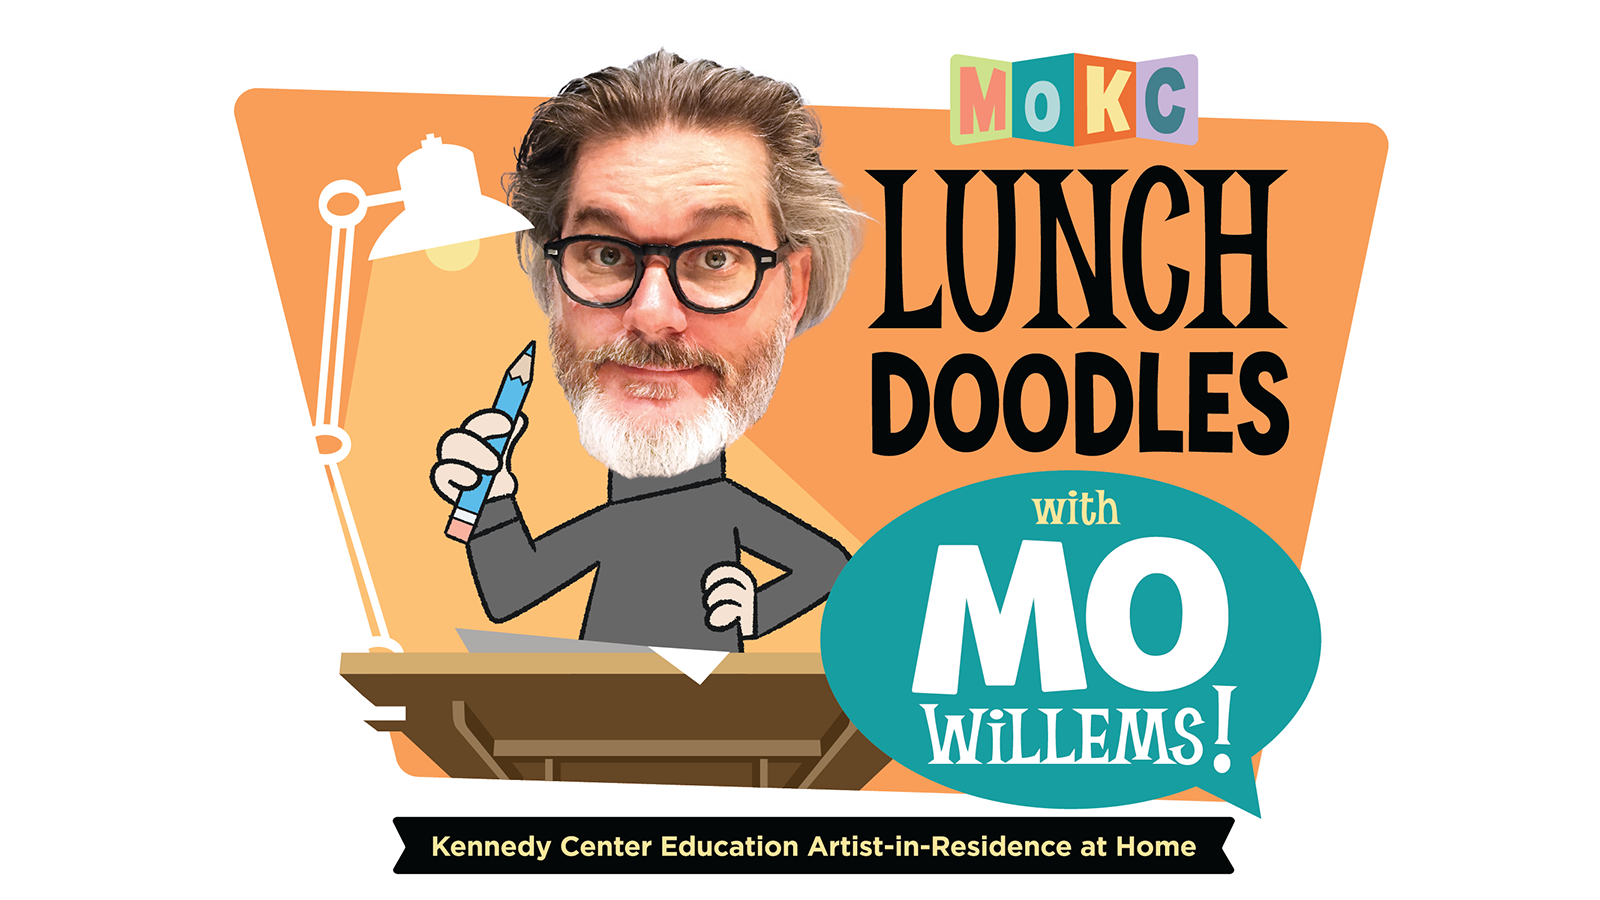 The logo for Lunch Doodles with Mo Willems!